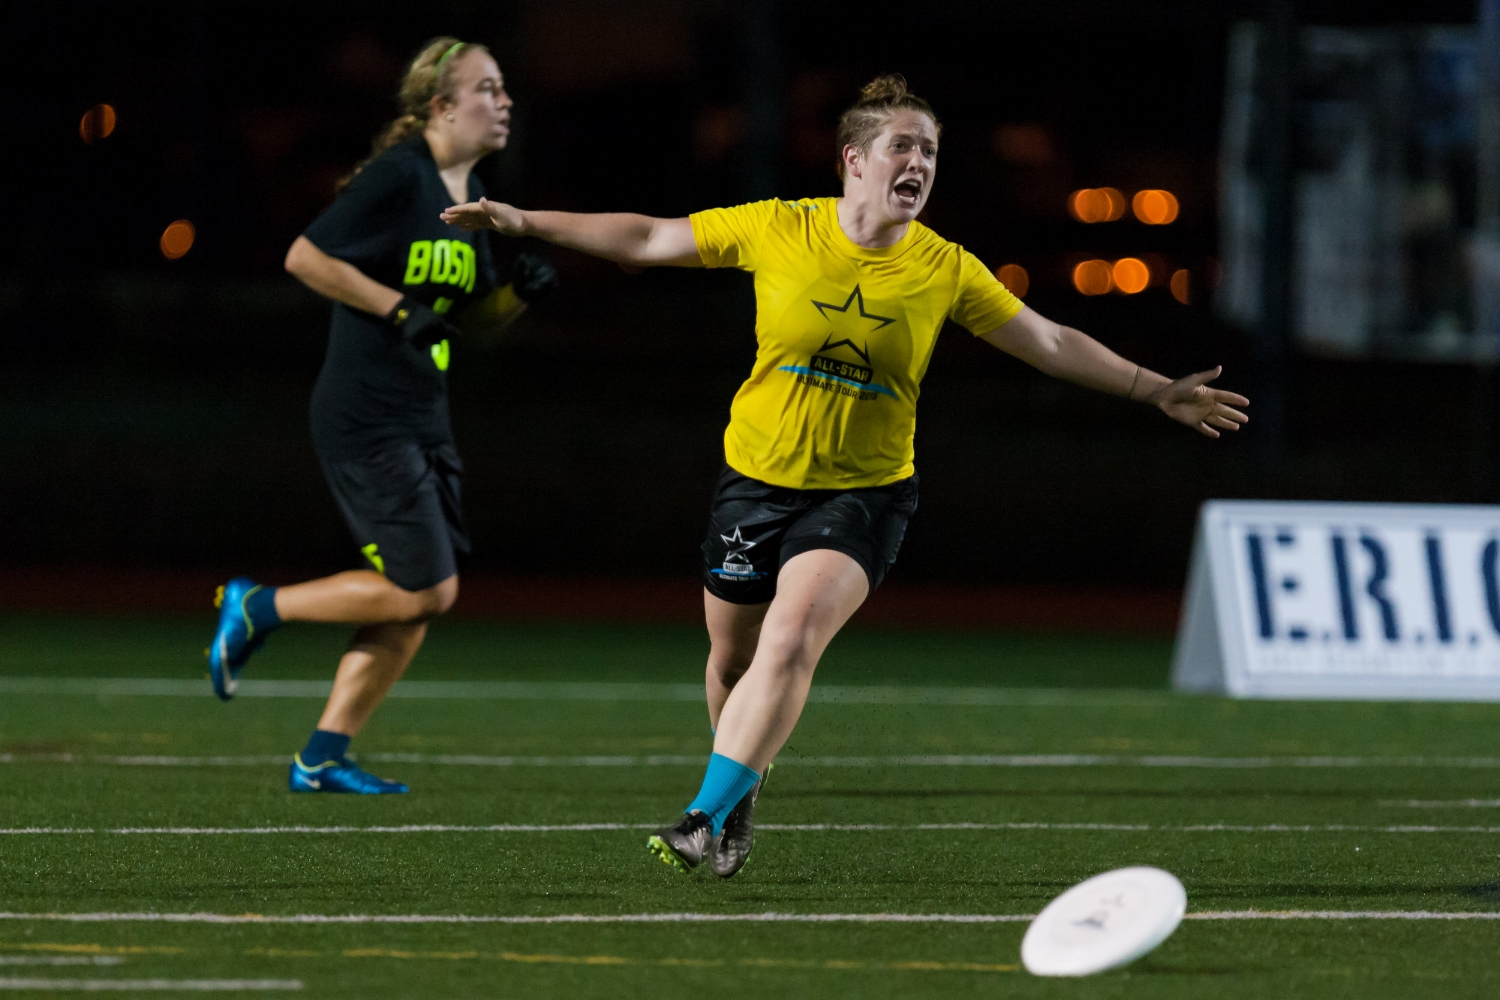 Shofner celebrates a score in the  All Star Tour  game against  Boston Brute Squad  in 2016. (Burt Granofsky,  UltiPhotos )